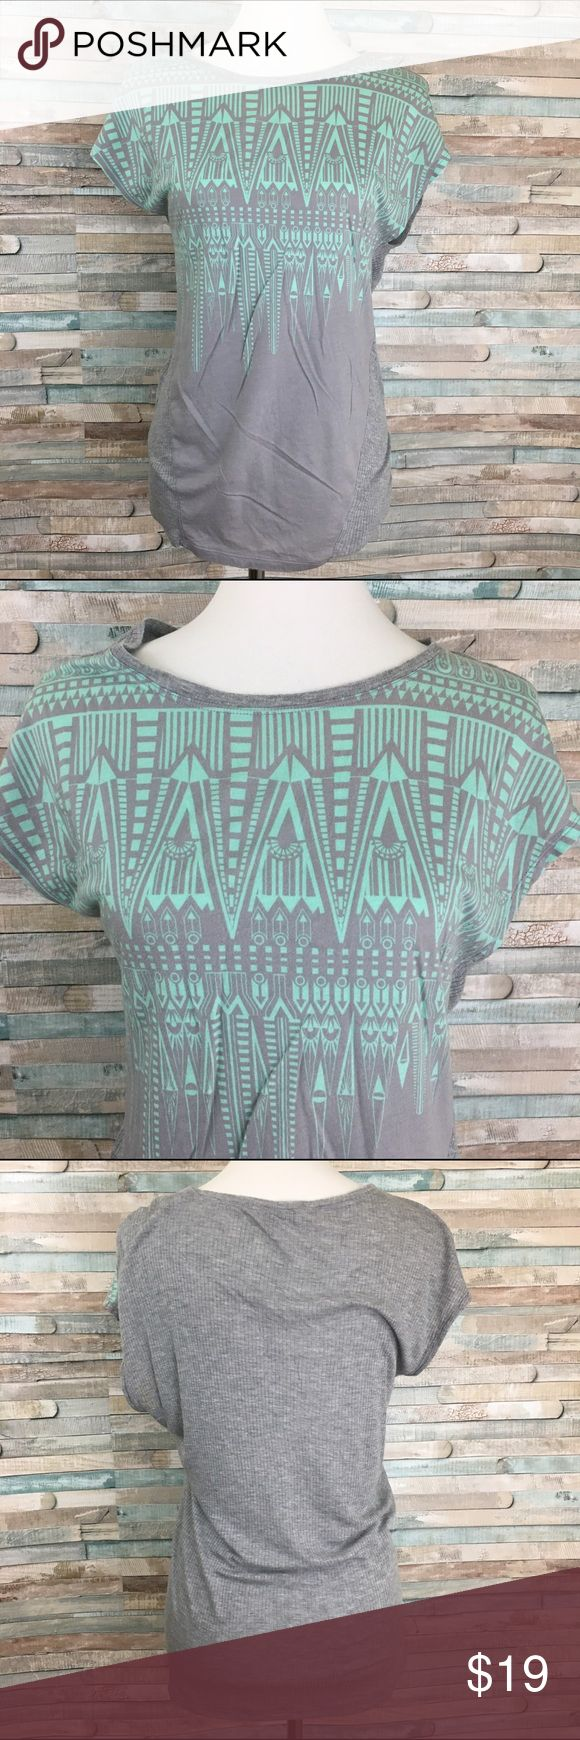 CABI women's Aztec knit top S Grey and turquoise cabi t shirt has an oversized flowy fit in good used condition from a smoke free home size small CAbi Tops Tees - Short Sleeve